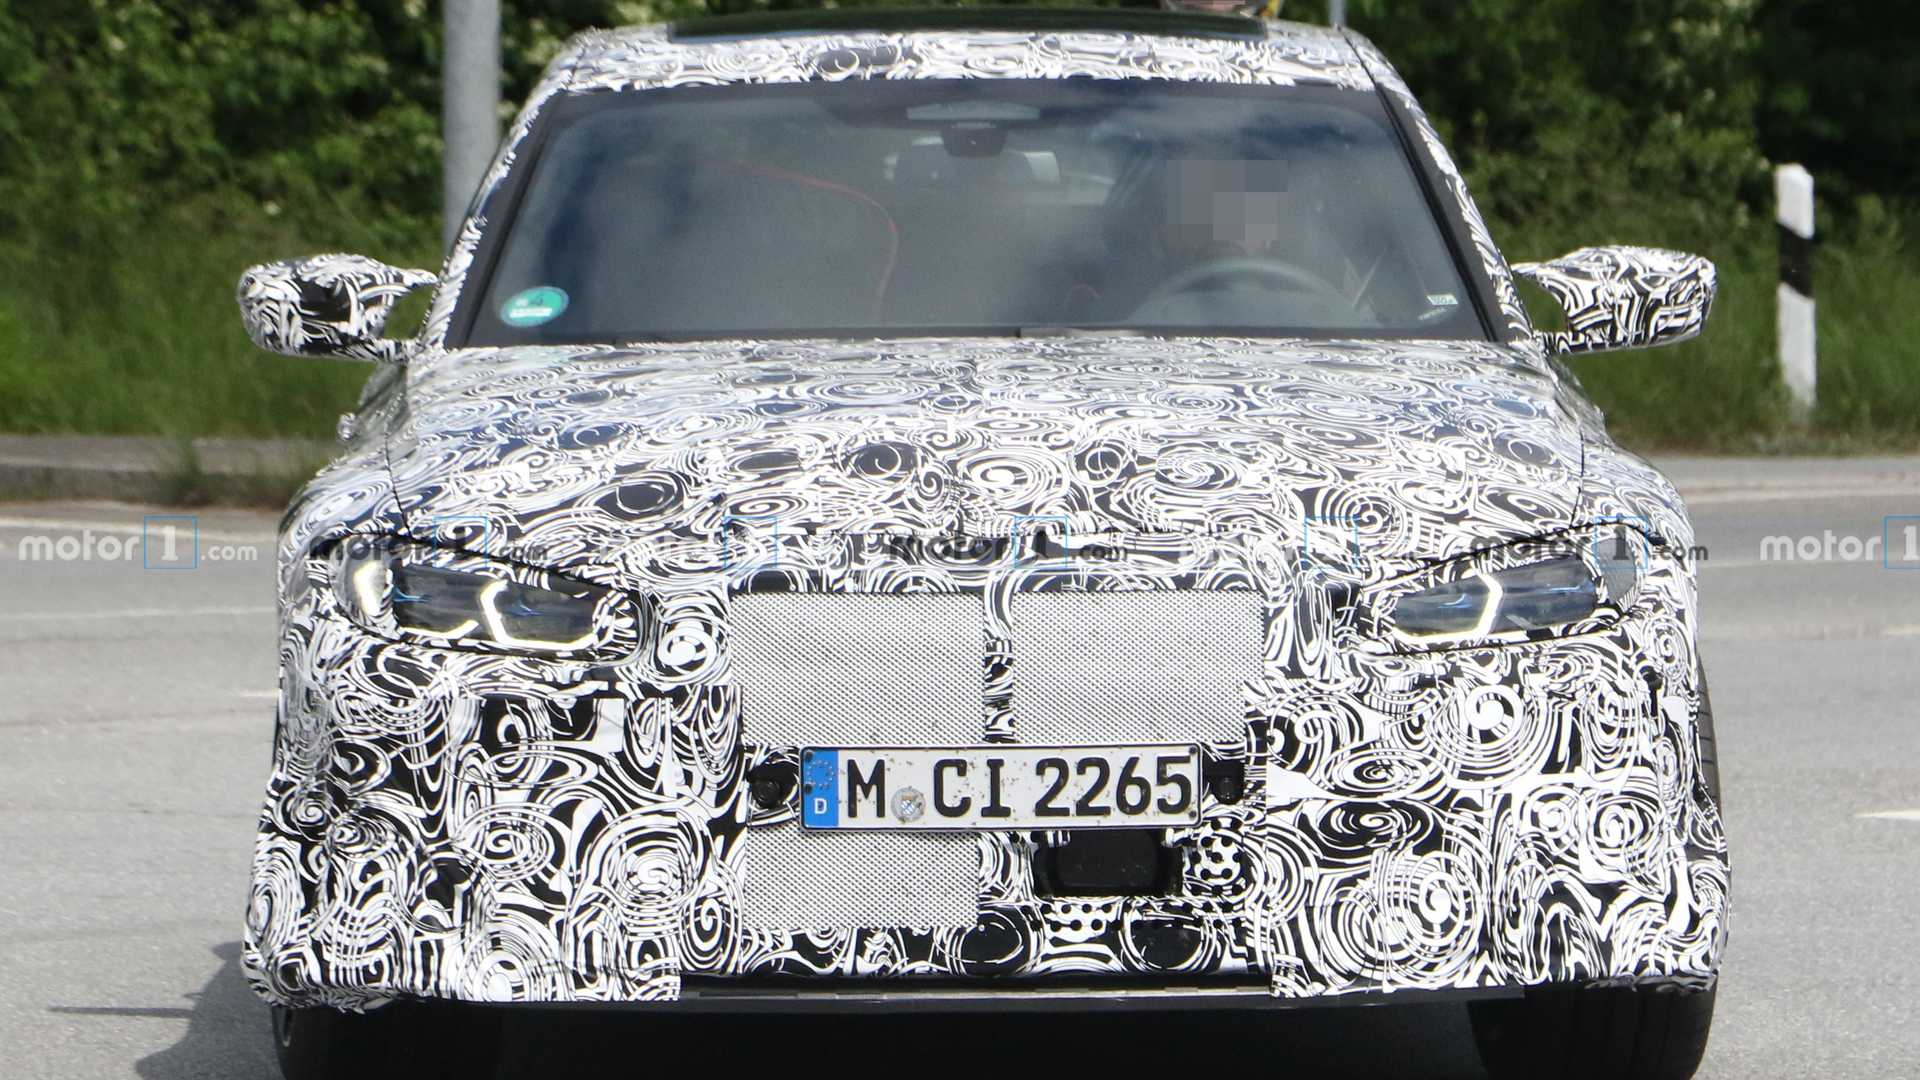 New BMW M3 CS Spied For The First Time, Inside And Out